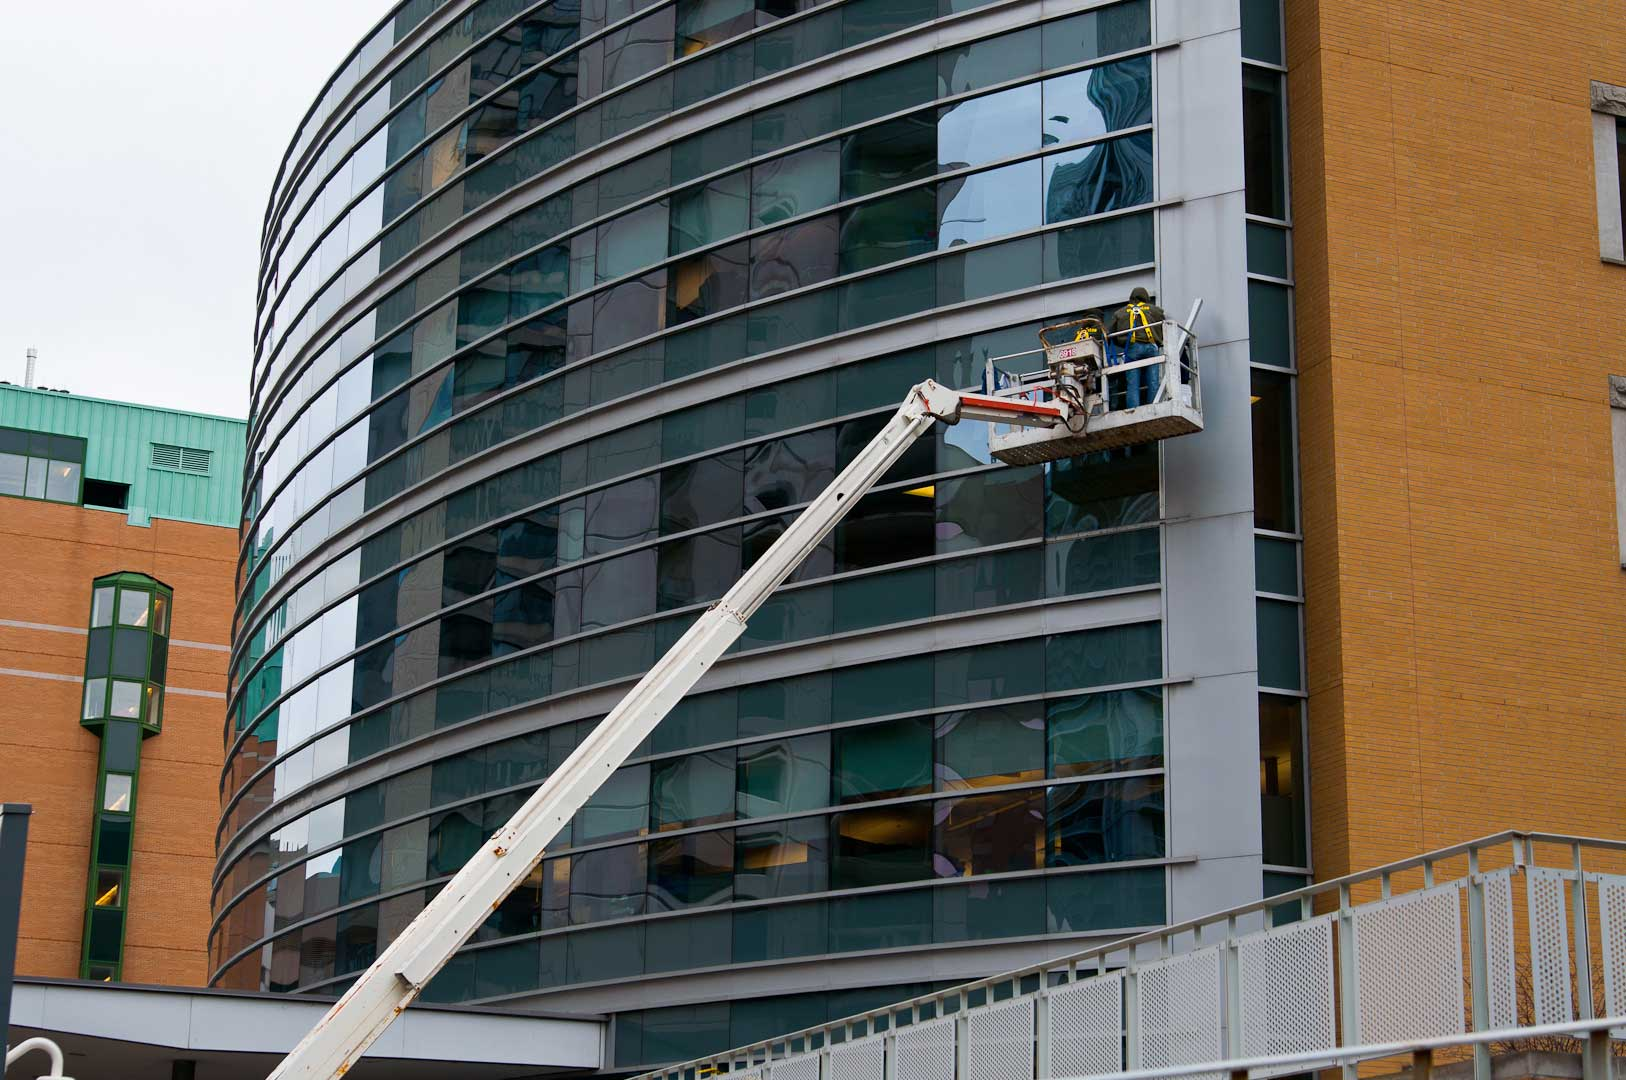 Telescoping Boom Truck Used to Access Building Facade in Toronto by Explore1